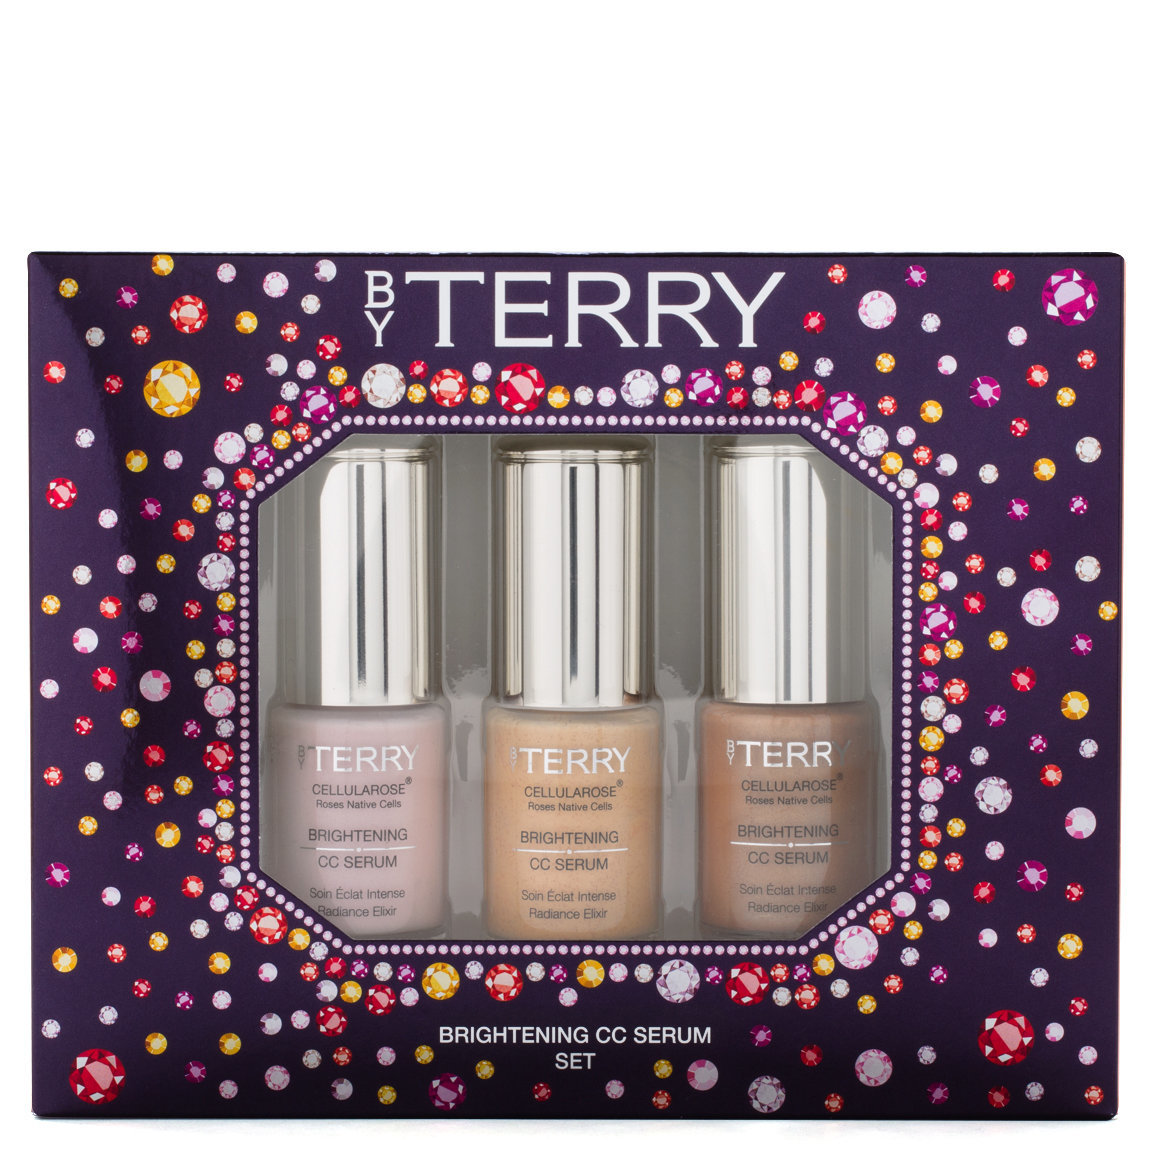 BY TERRY Gem Glow Brightening CC Serum Set product smear.